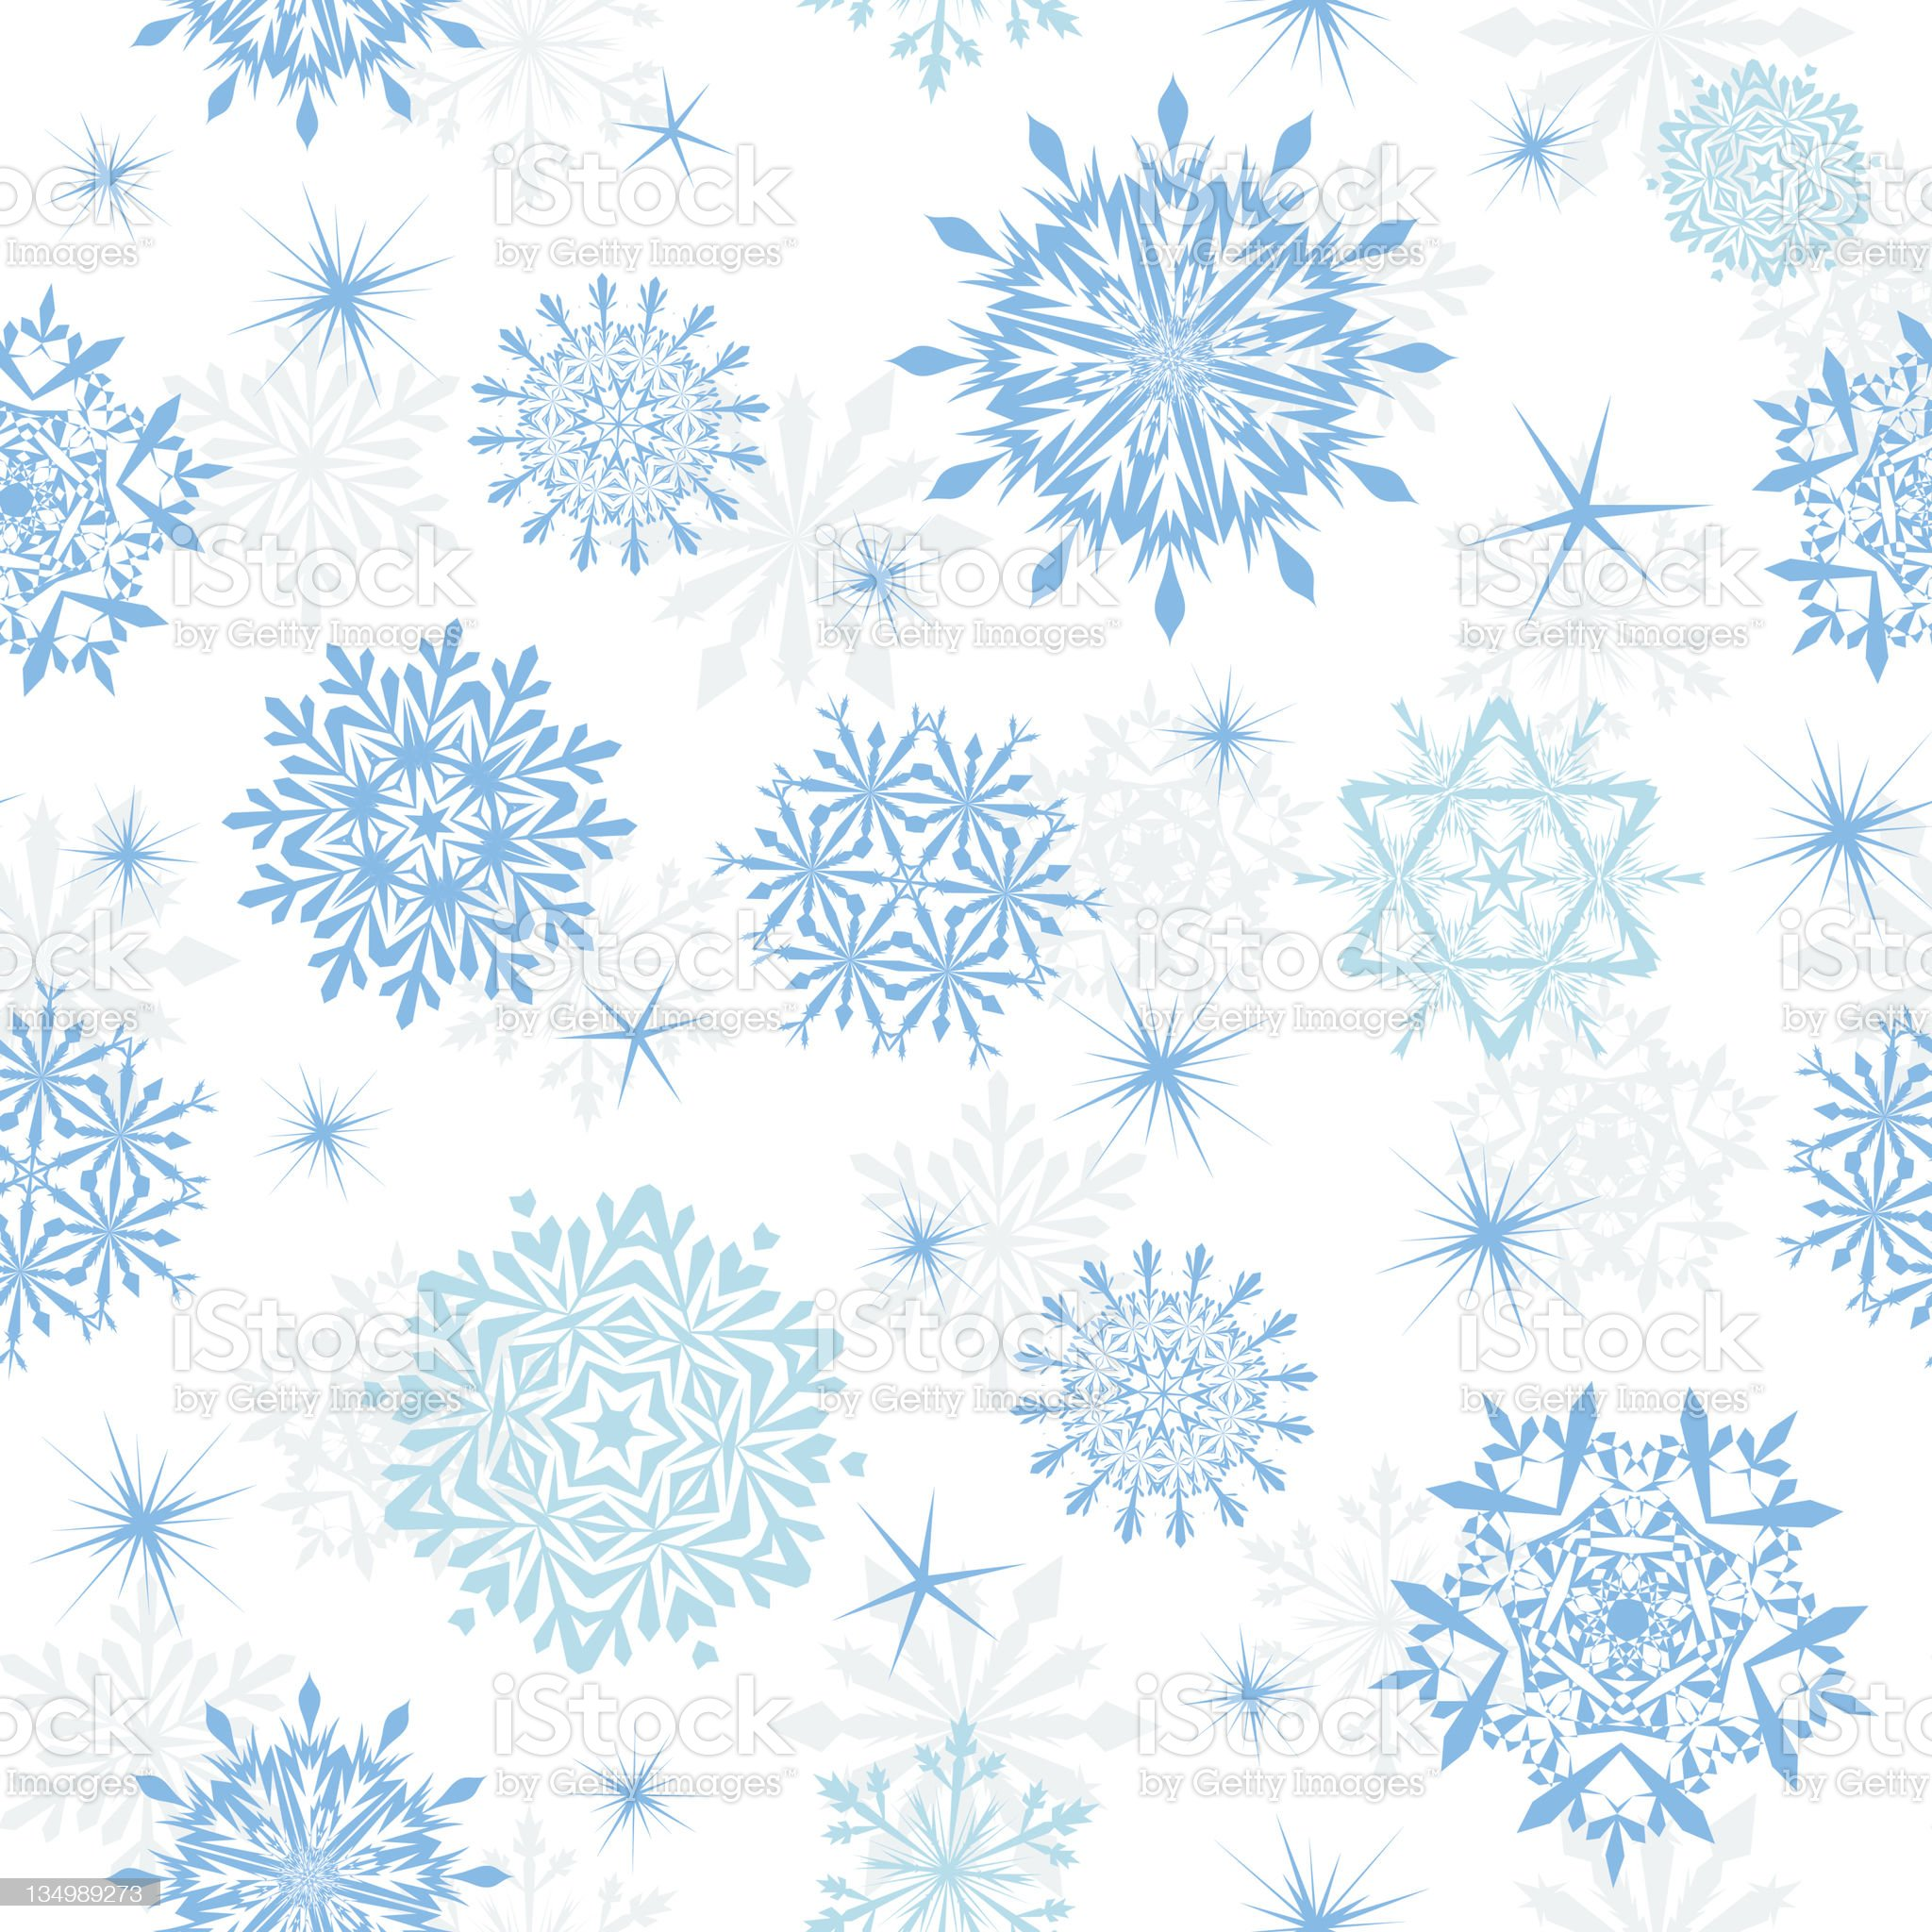 seamless snowflakes background royalty-free stock vector art